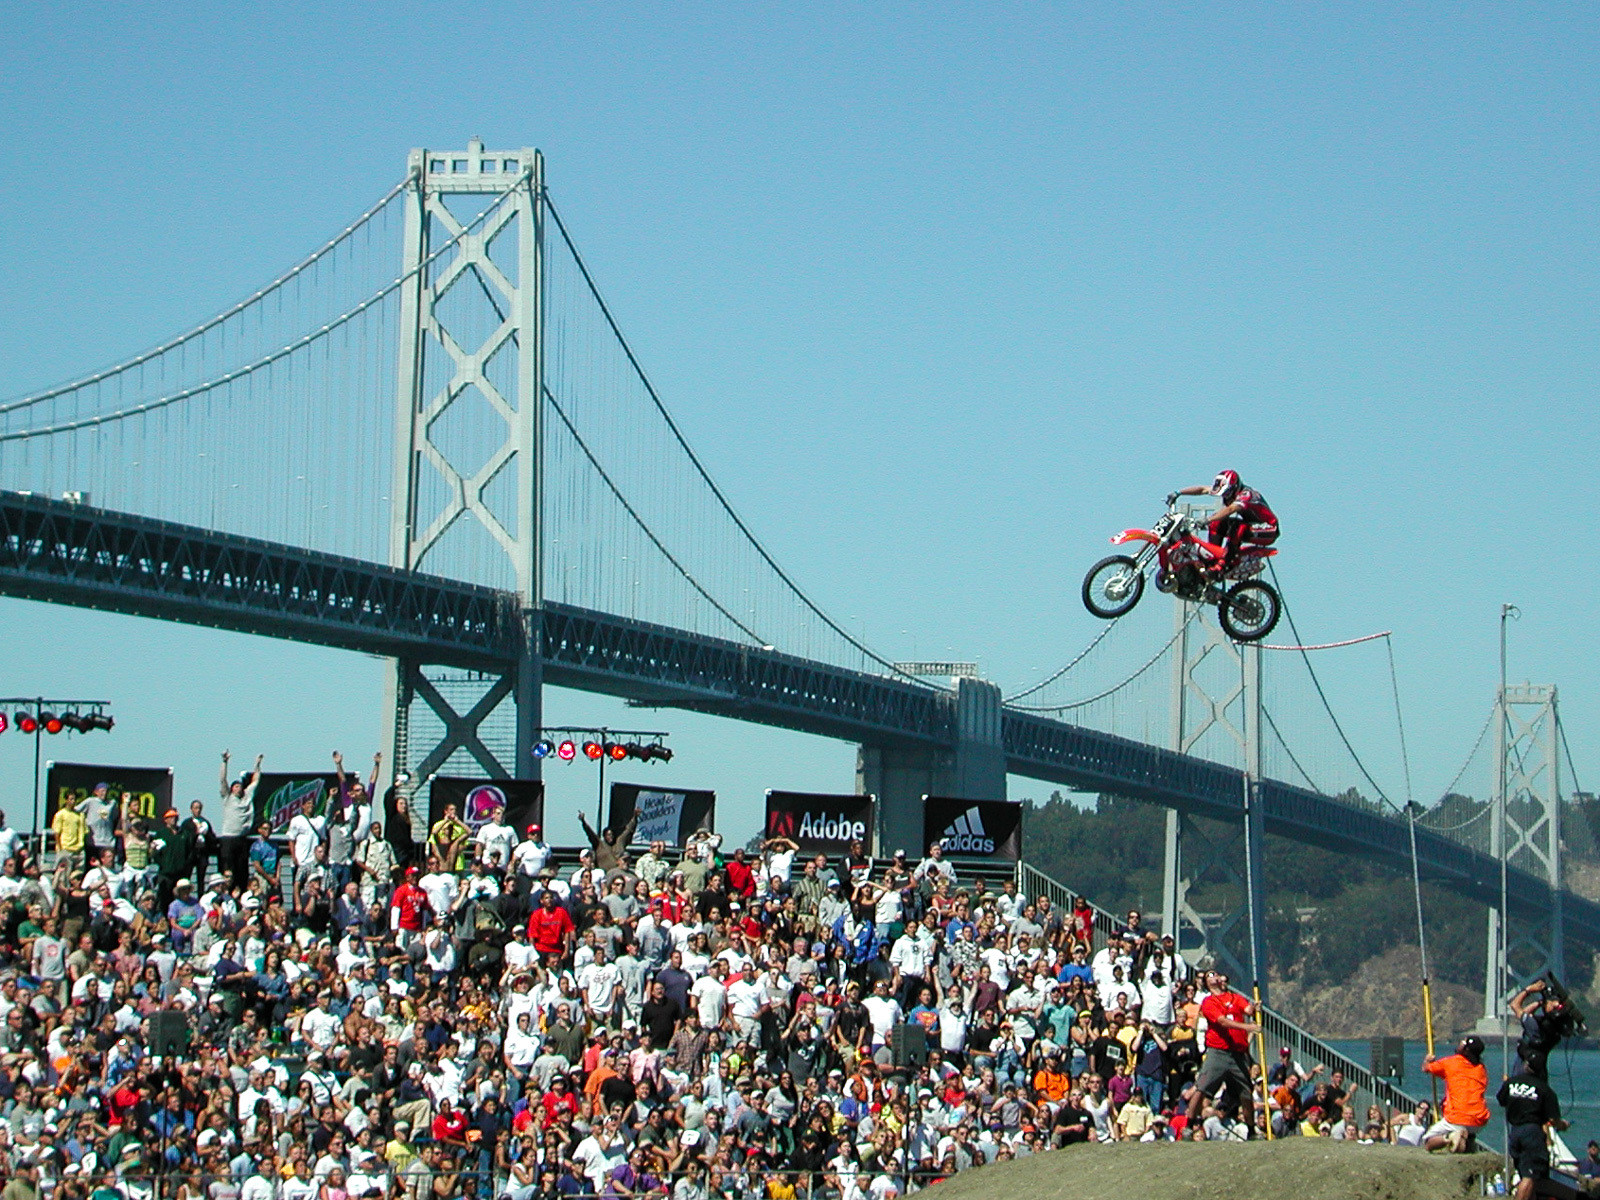 Man, San Francisco was such a cool venue for the X Games.